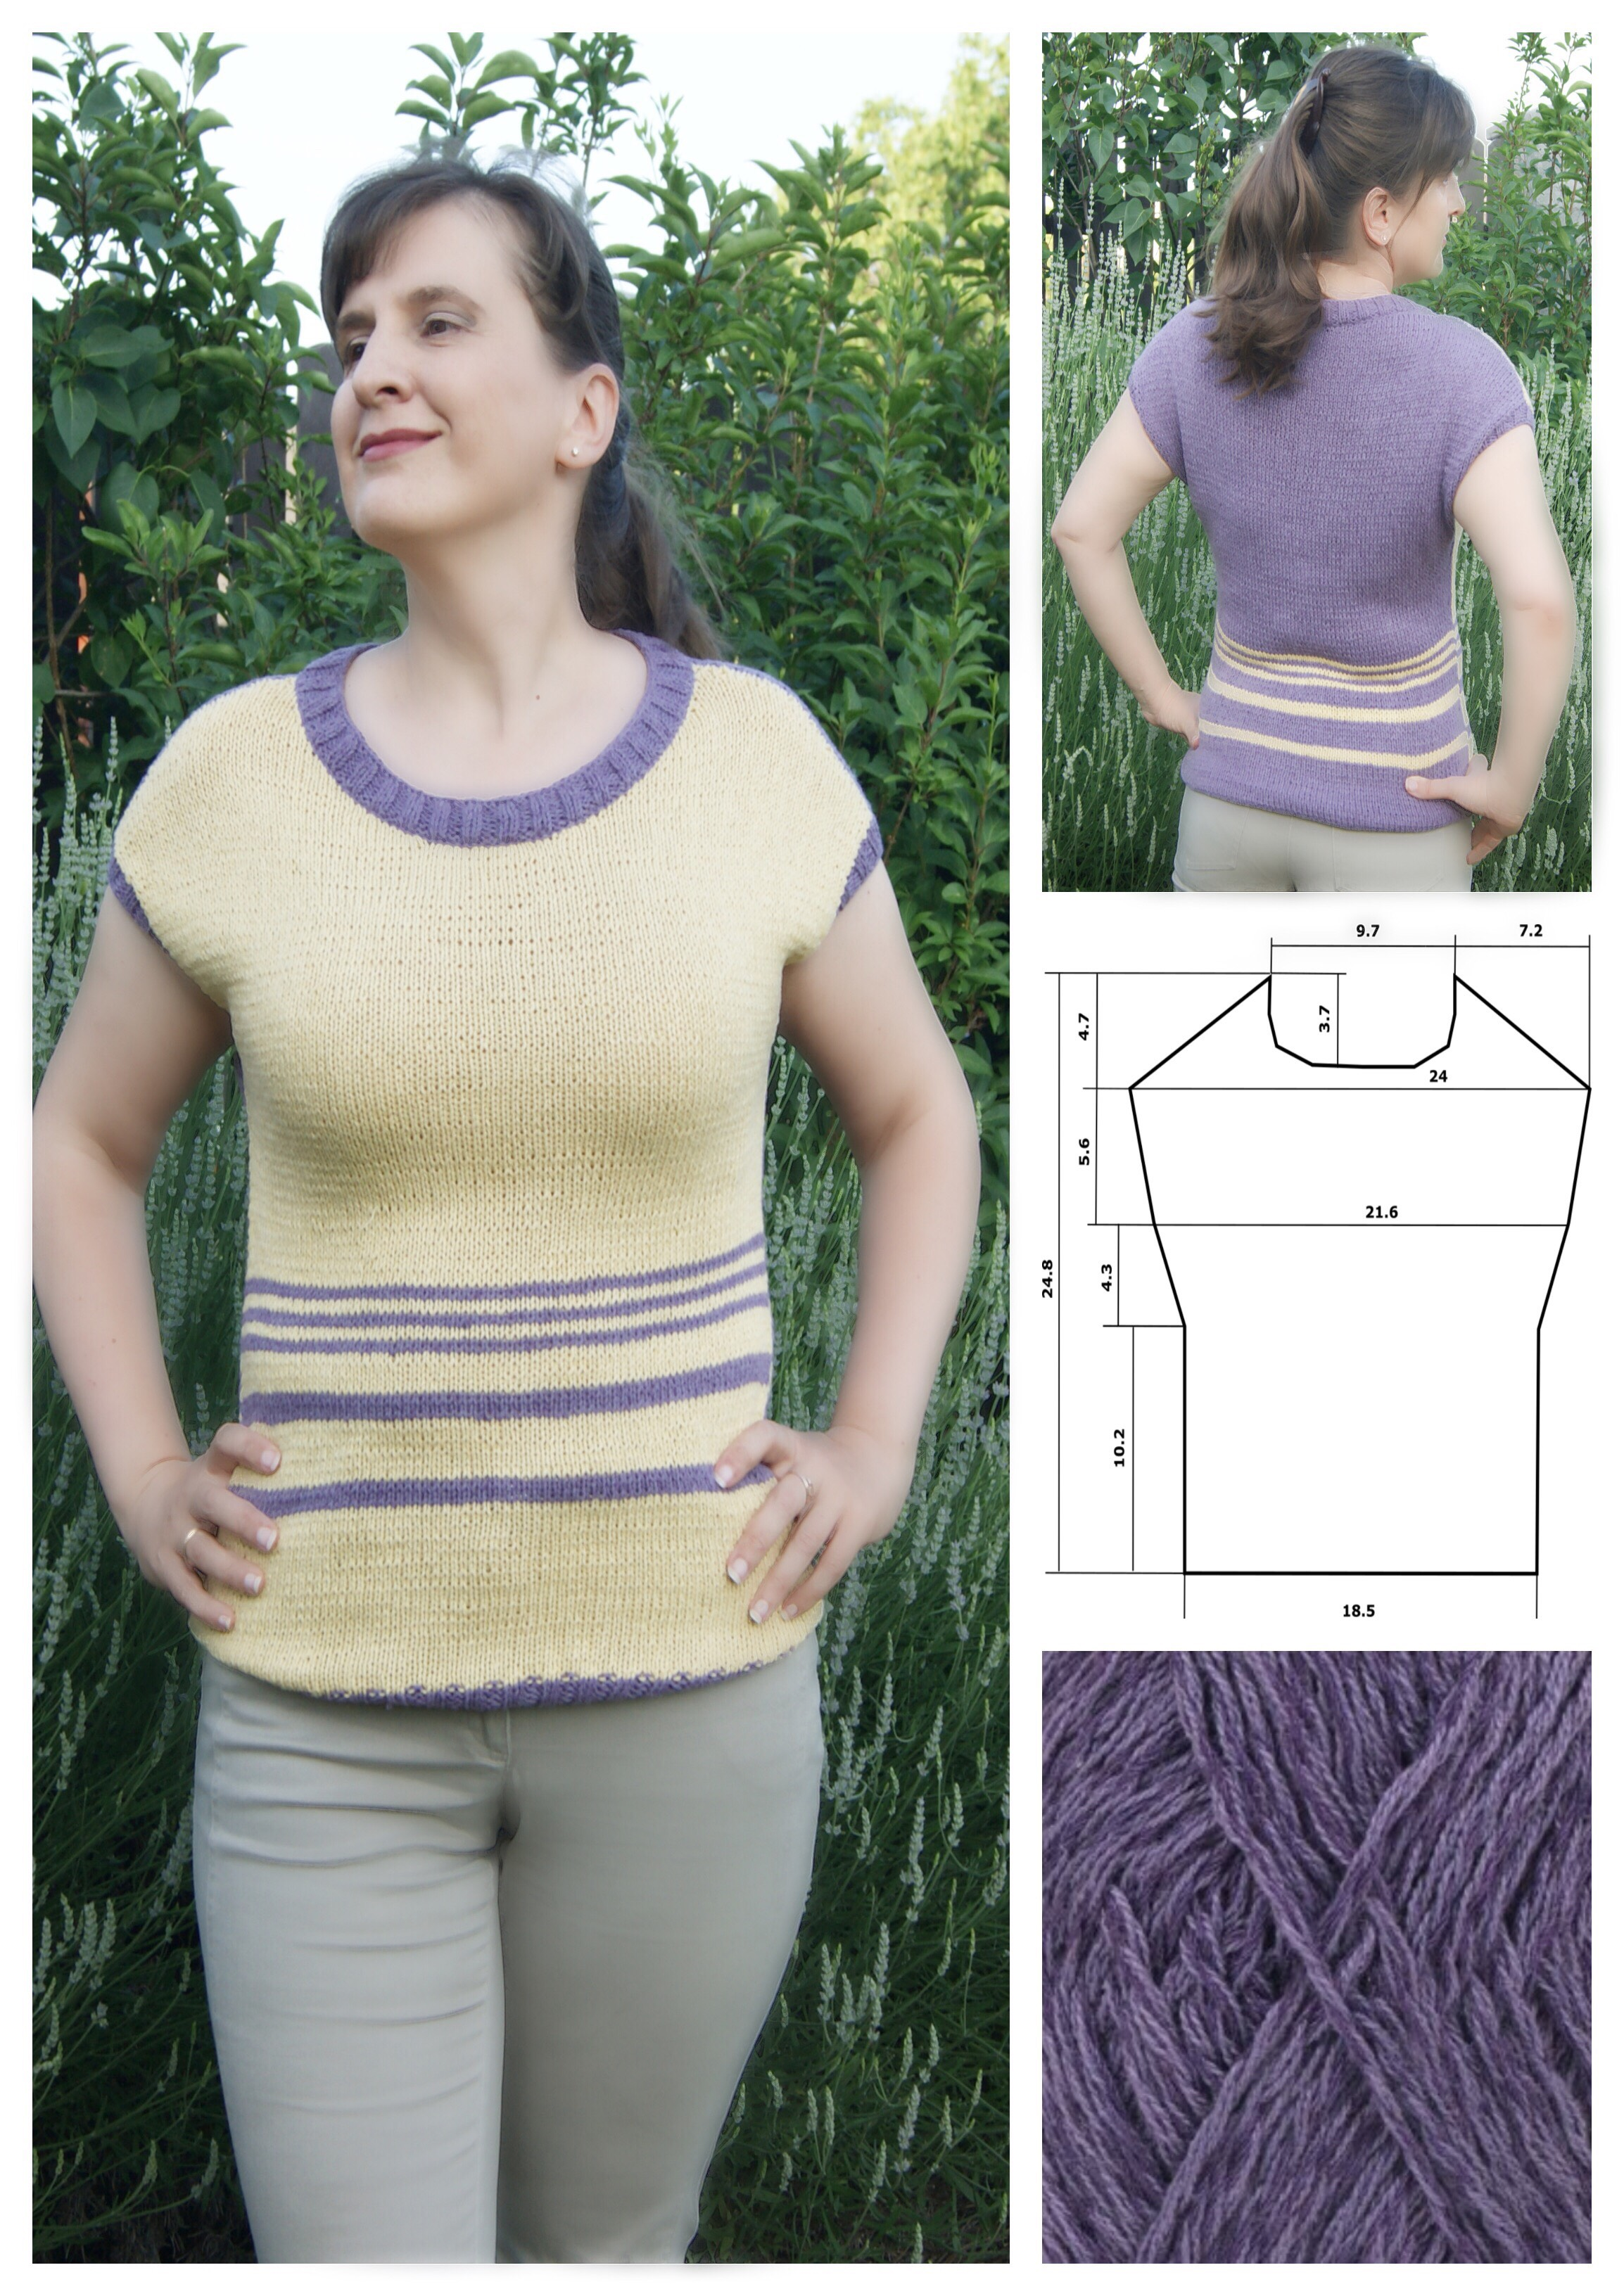 Summer top for women. Free knitting pattern.